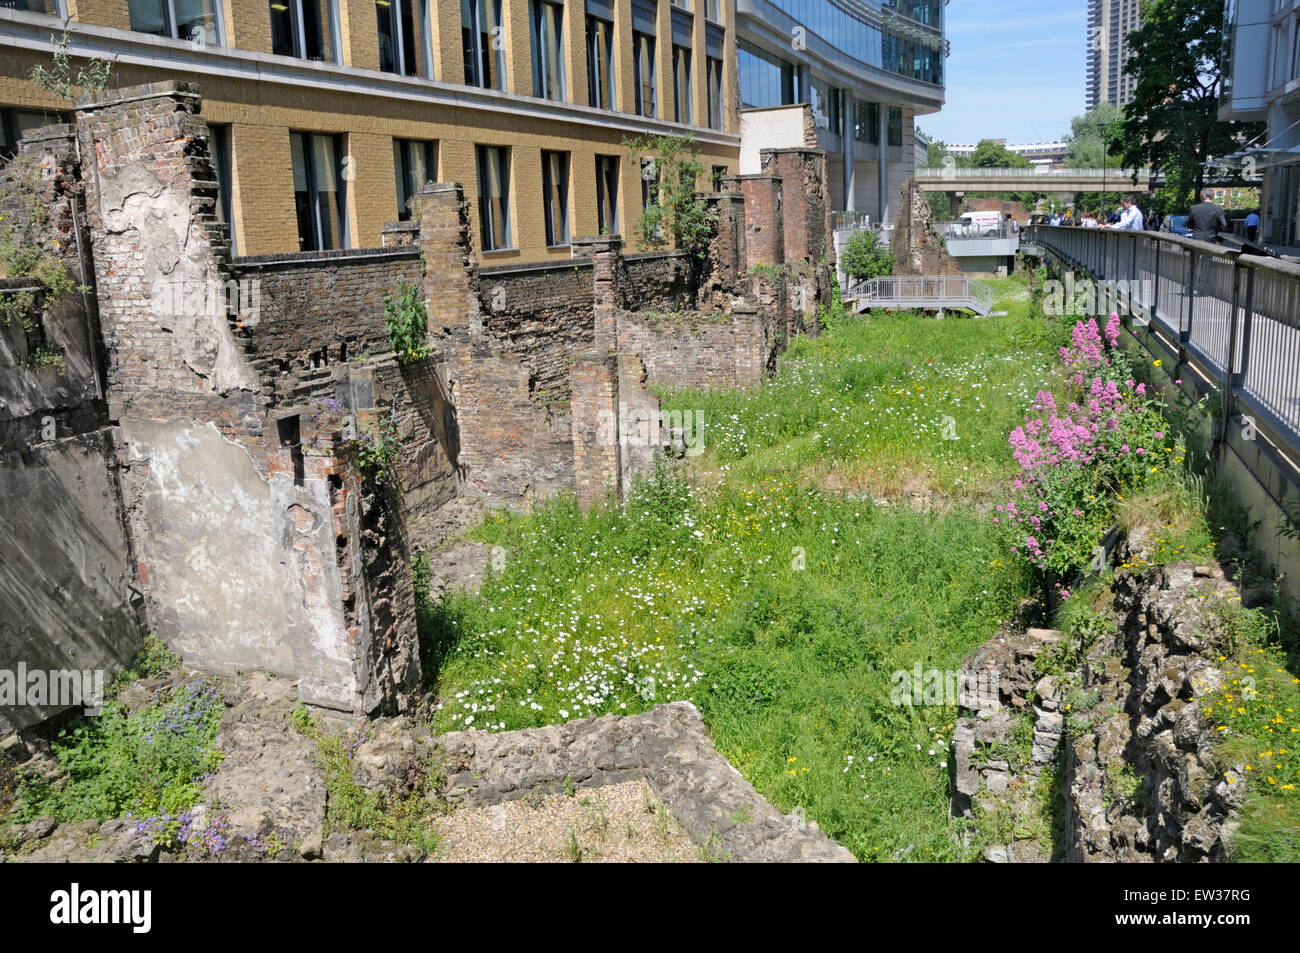 London, England, UK. Surviving section of the original Roman London Wall, by Noble Street, near the Barbican. - Stock Image